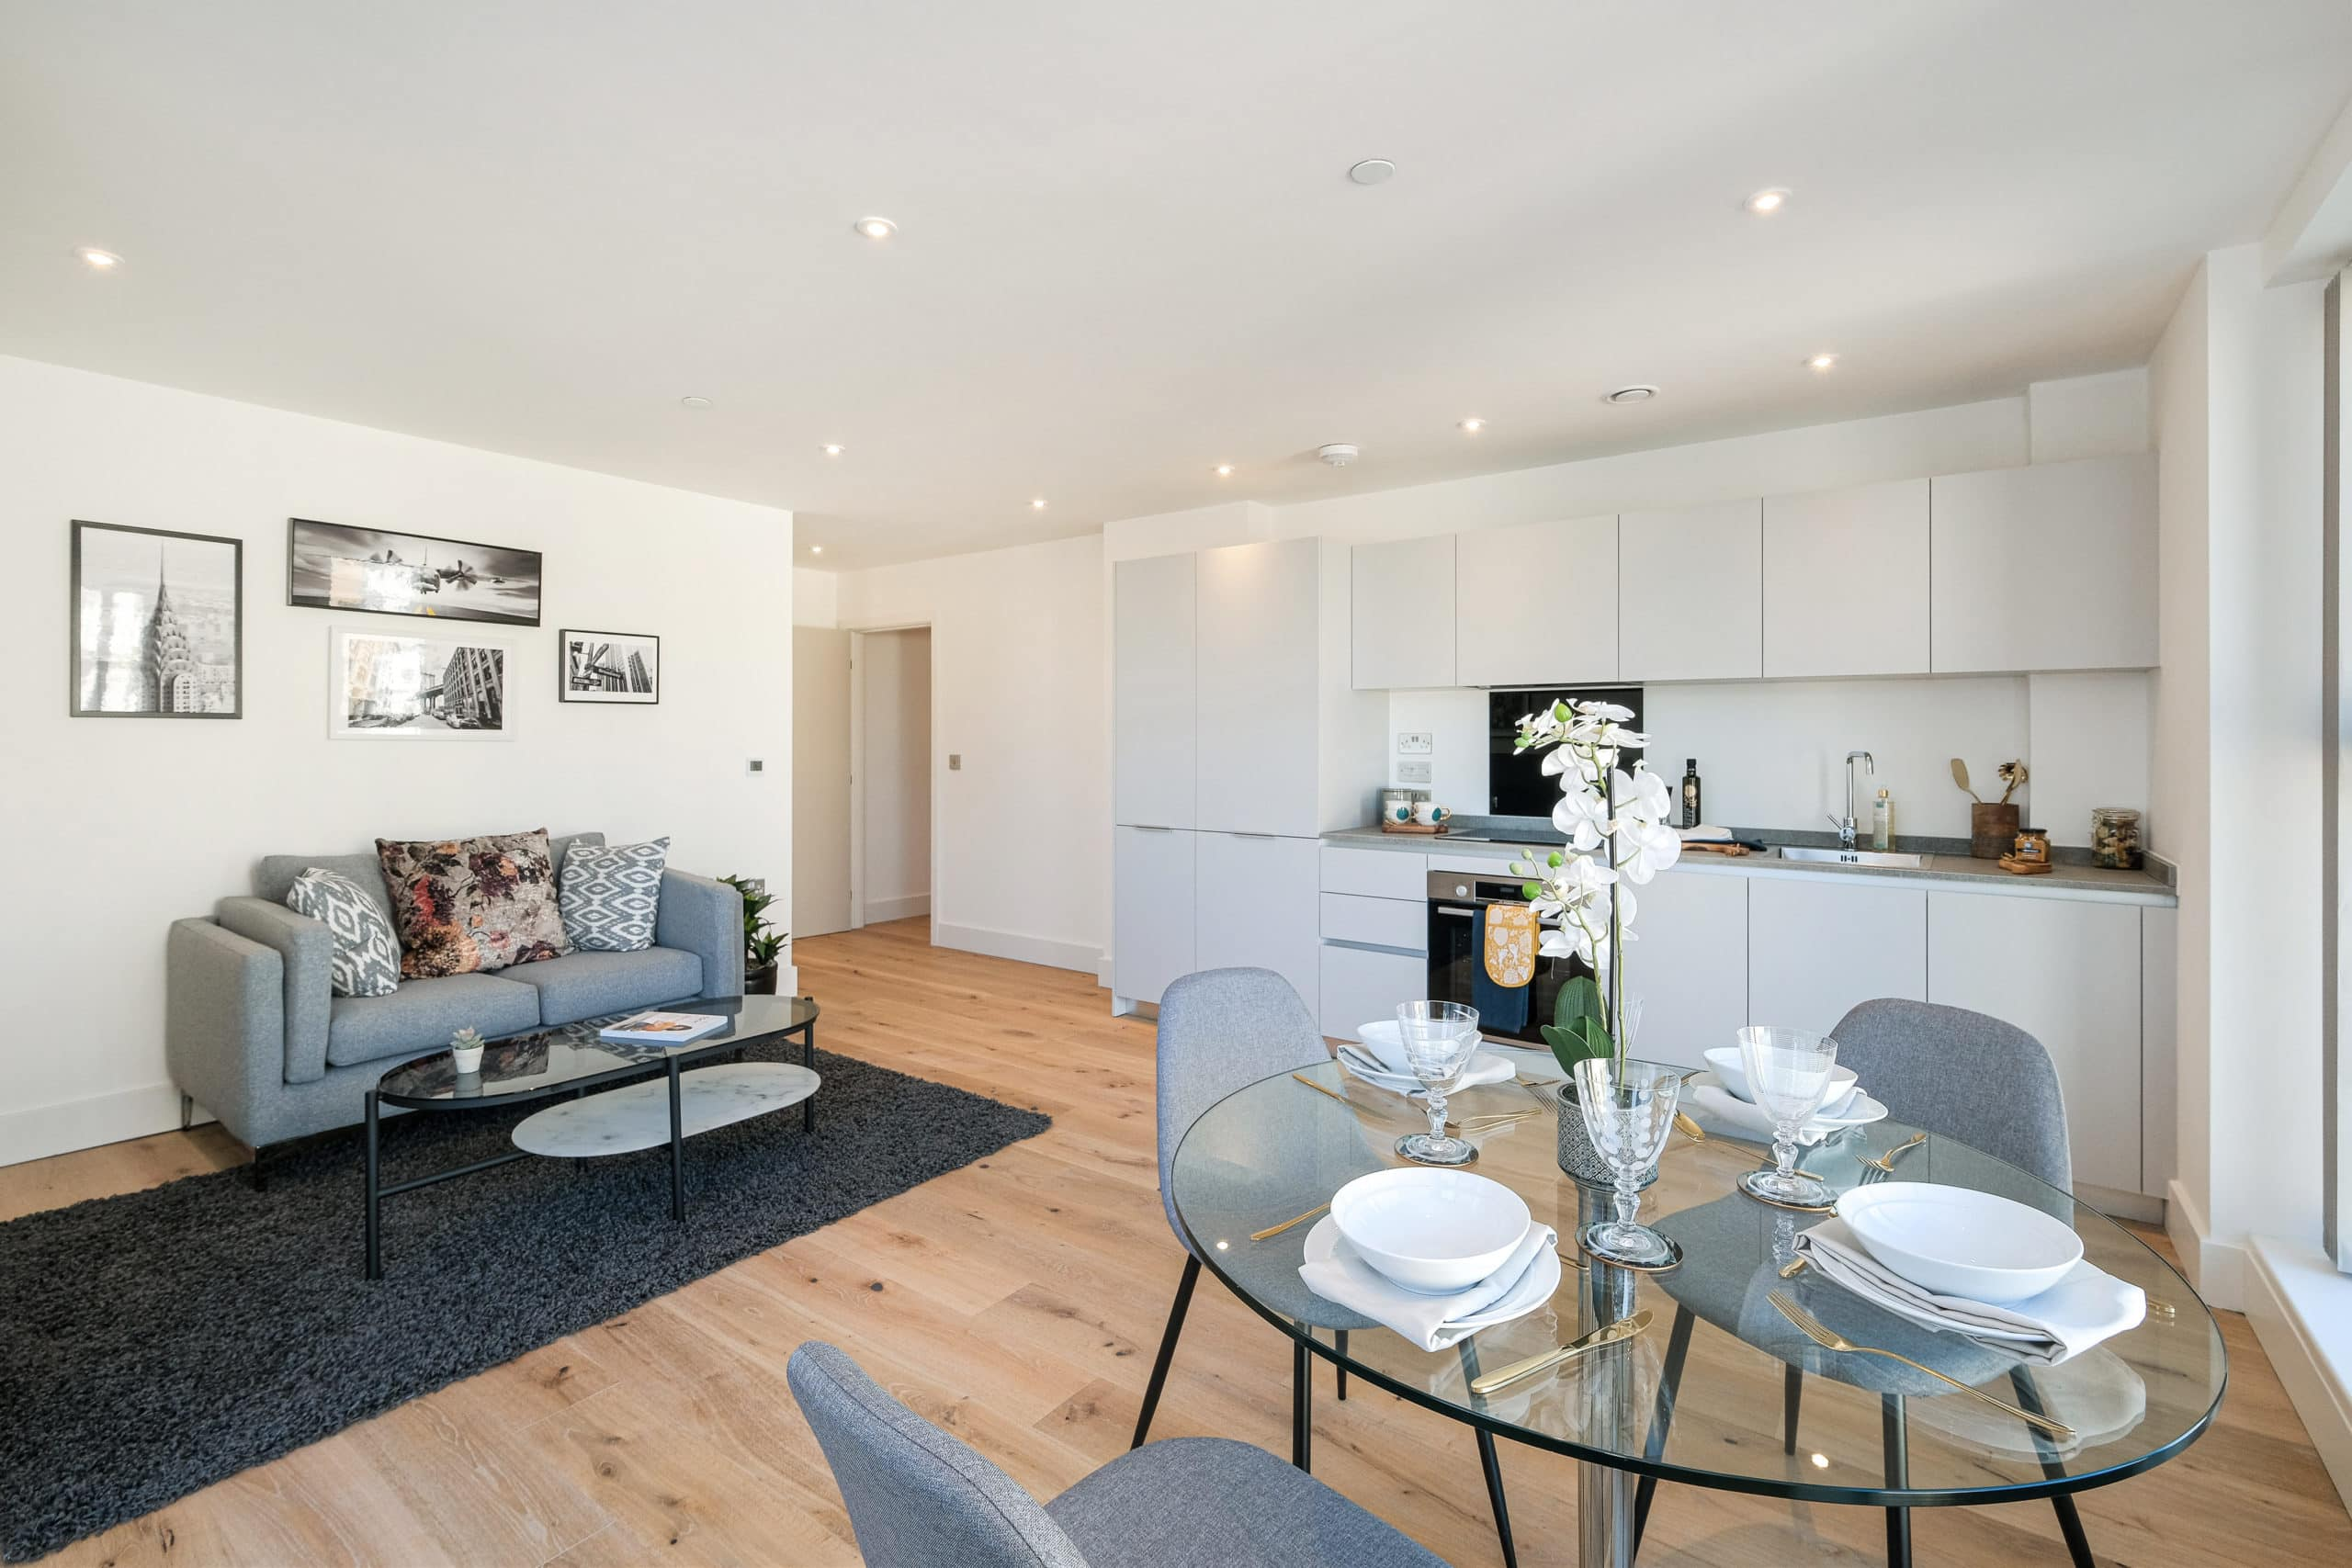 Internal photography of Latimer Homes' Waterfront - Shared Ownership homes available on Share to Buy